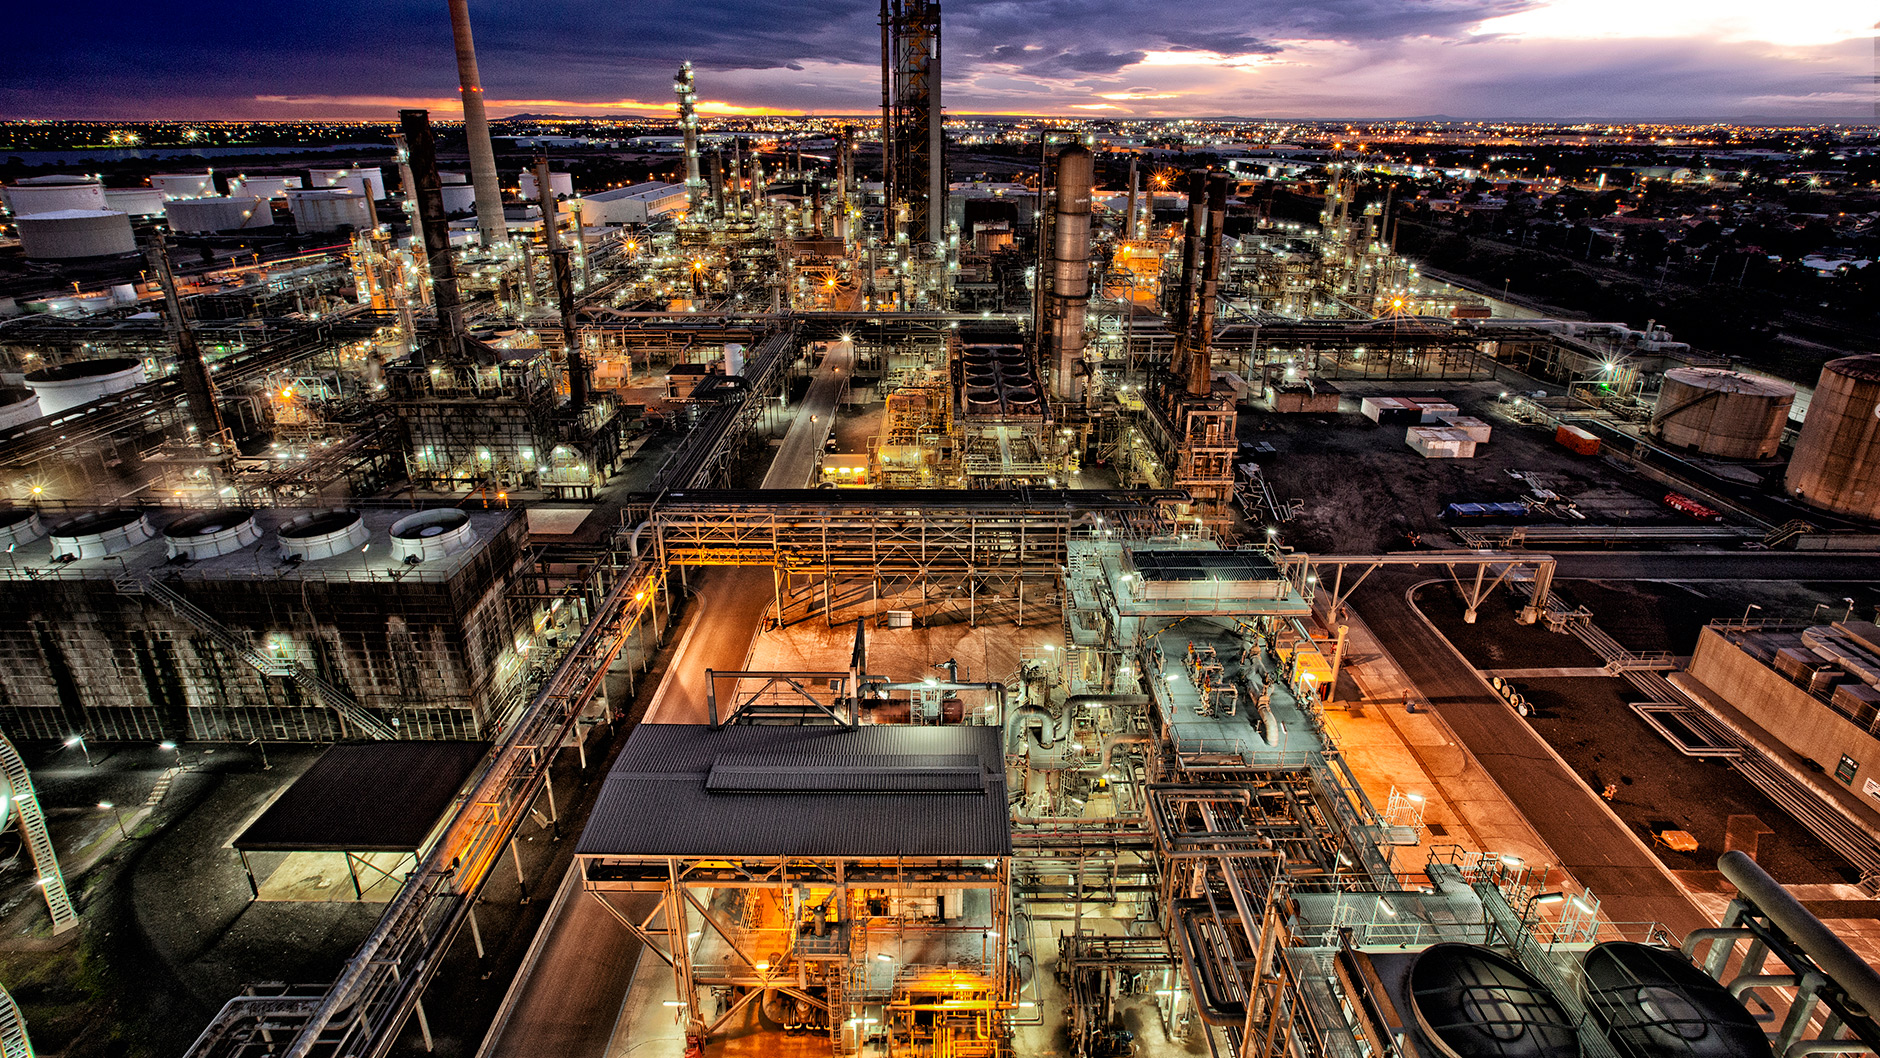 refinery growth a boost for local economy and employment